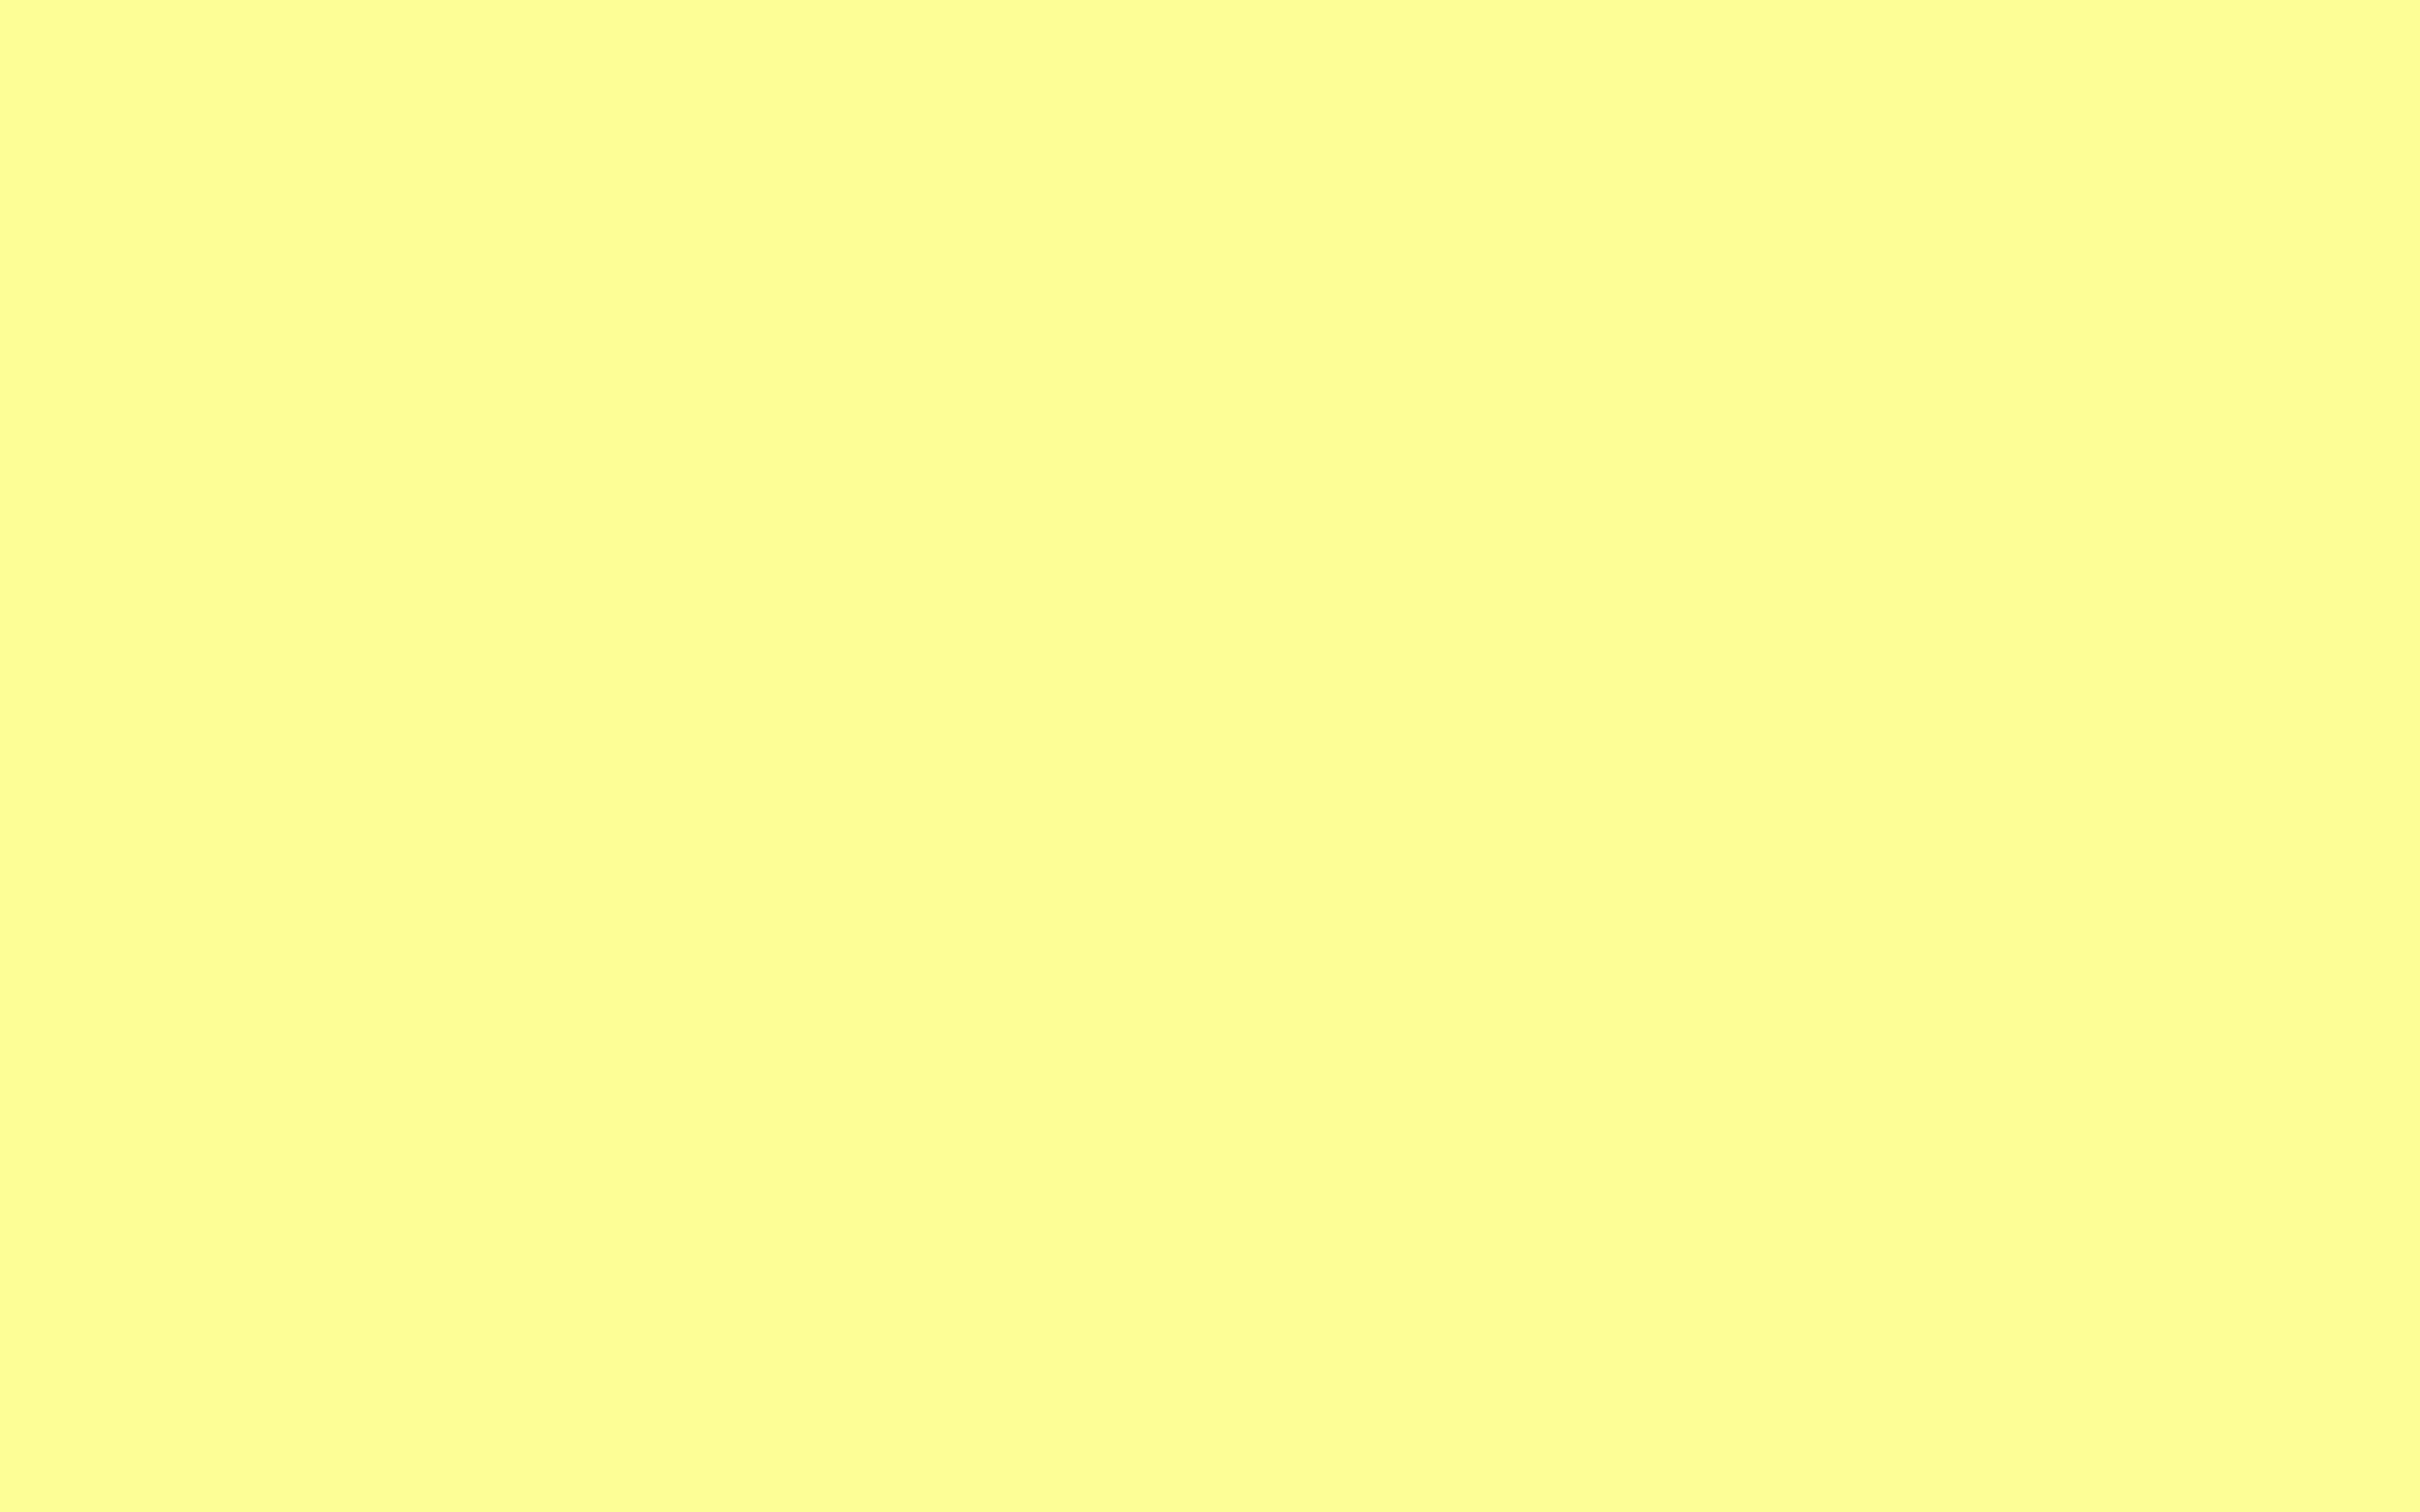 2560x1600 Pastel Yellow Solid Color Background 2560x1600